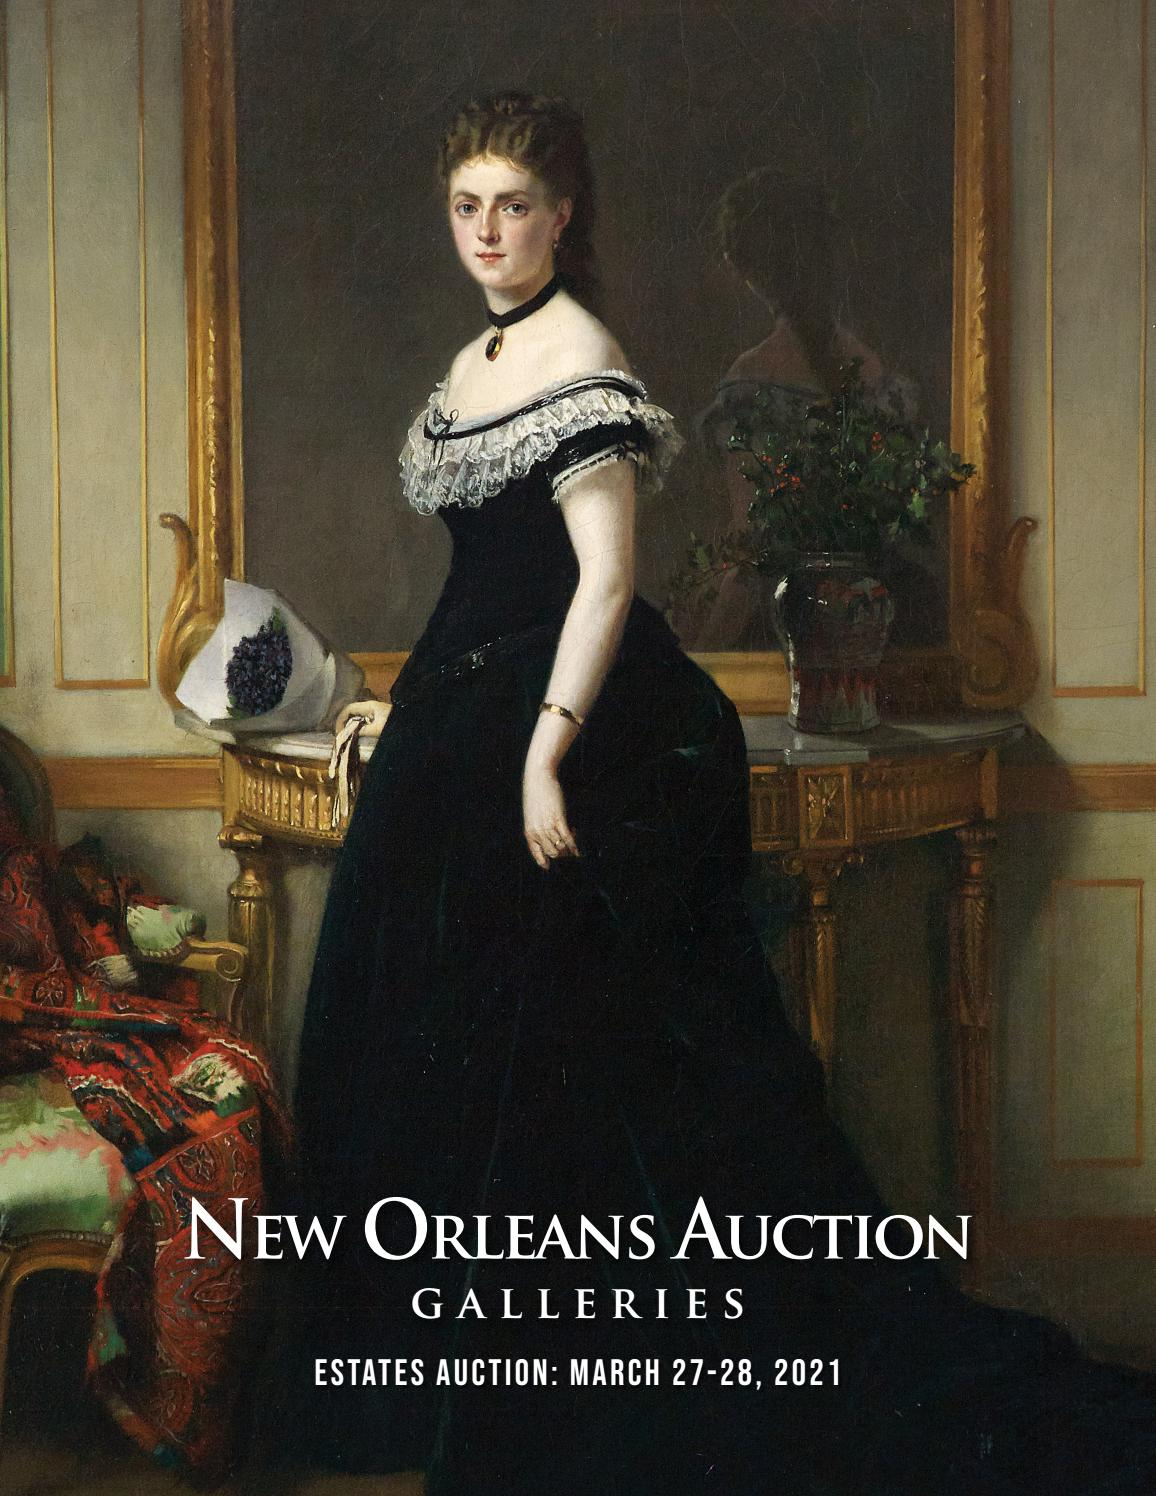 March 32 32, 32 Estates Auction by New Orleans Auction Galleries ...